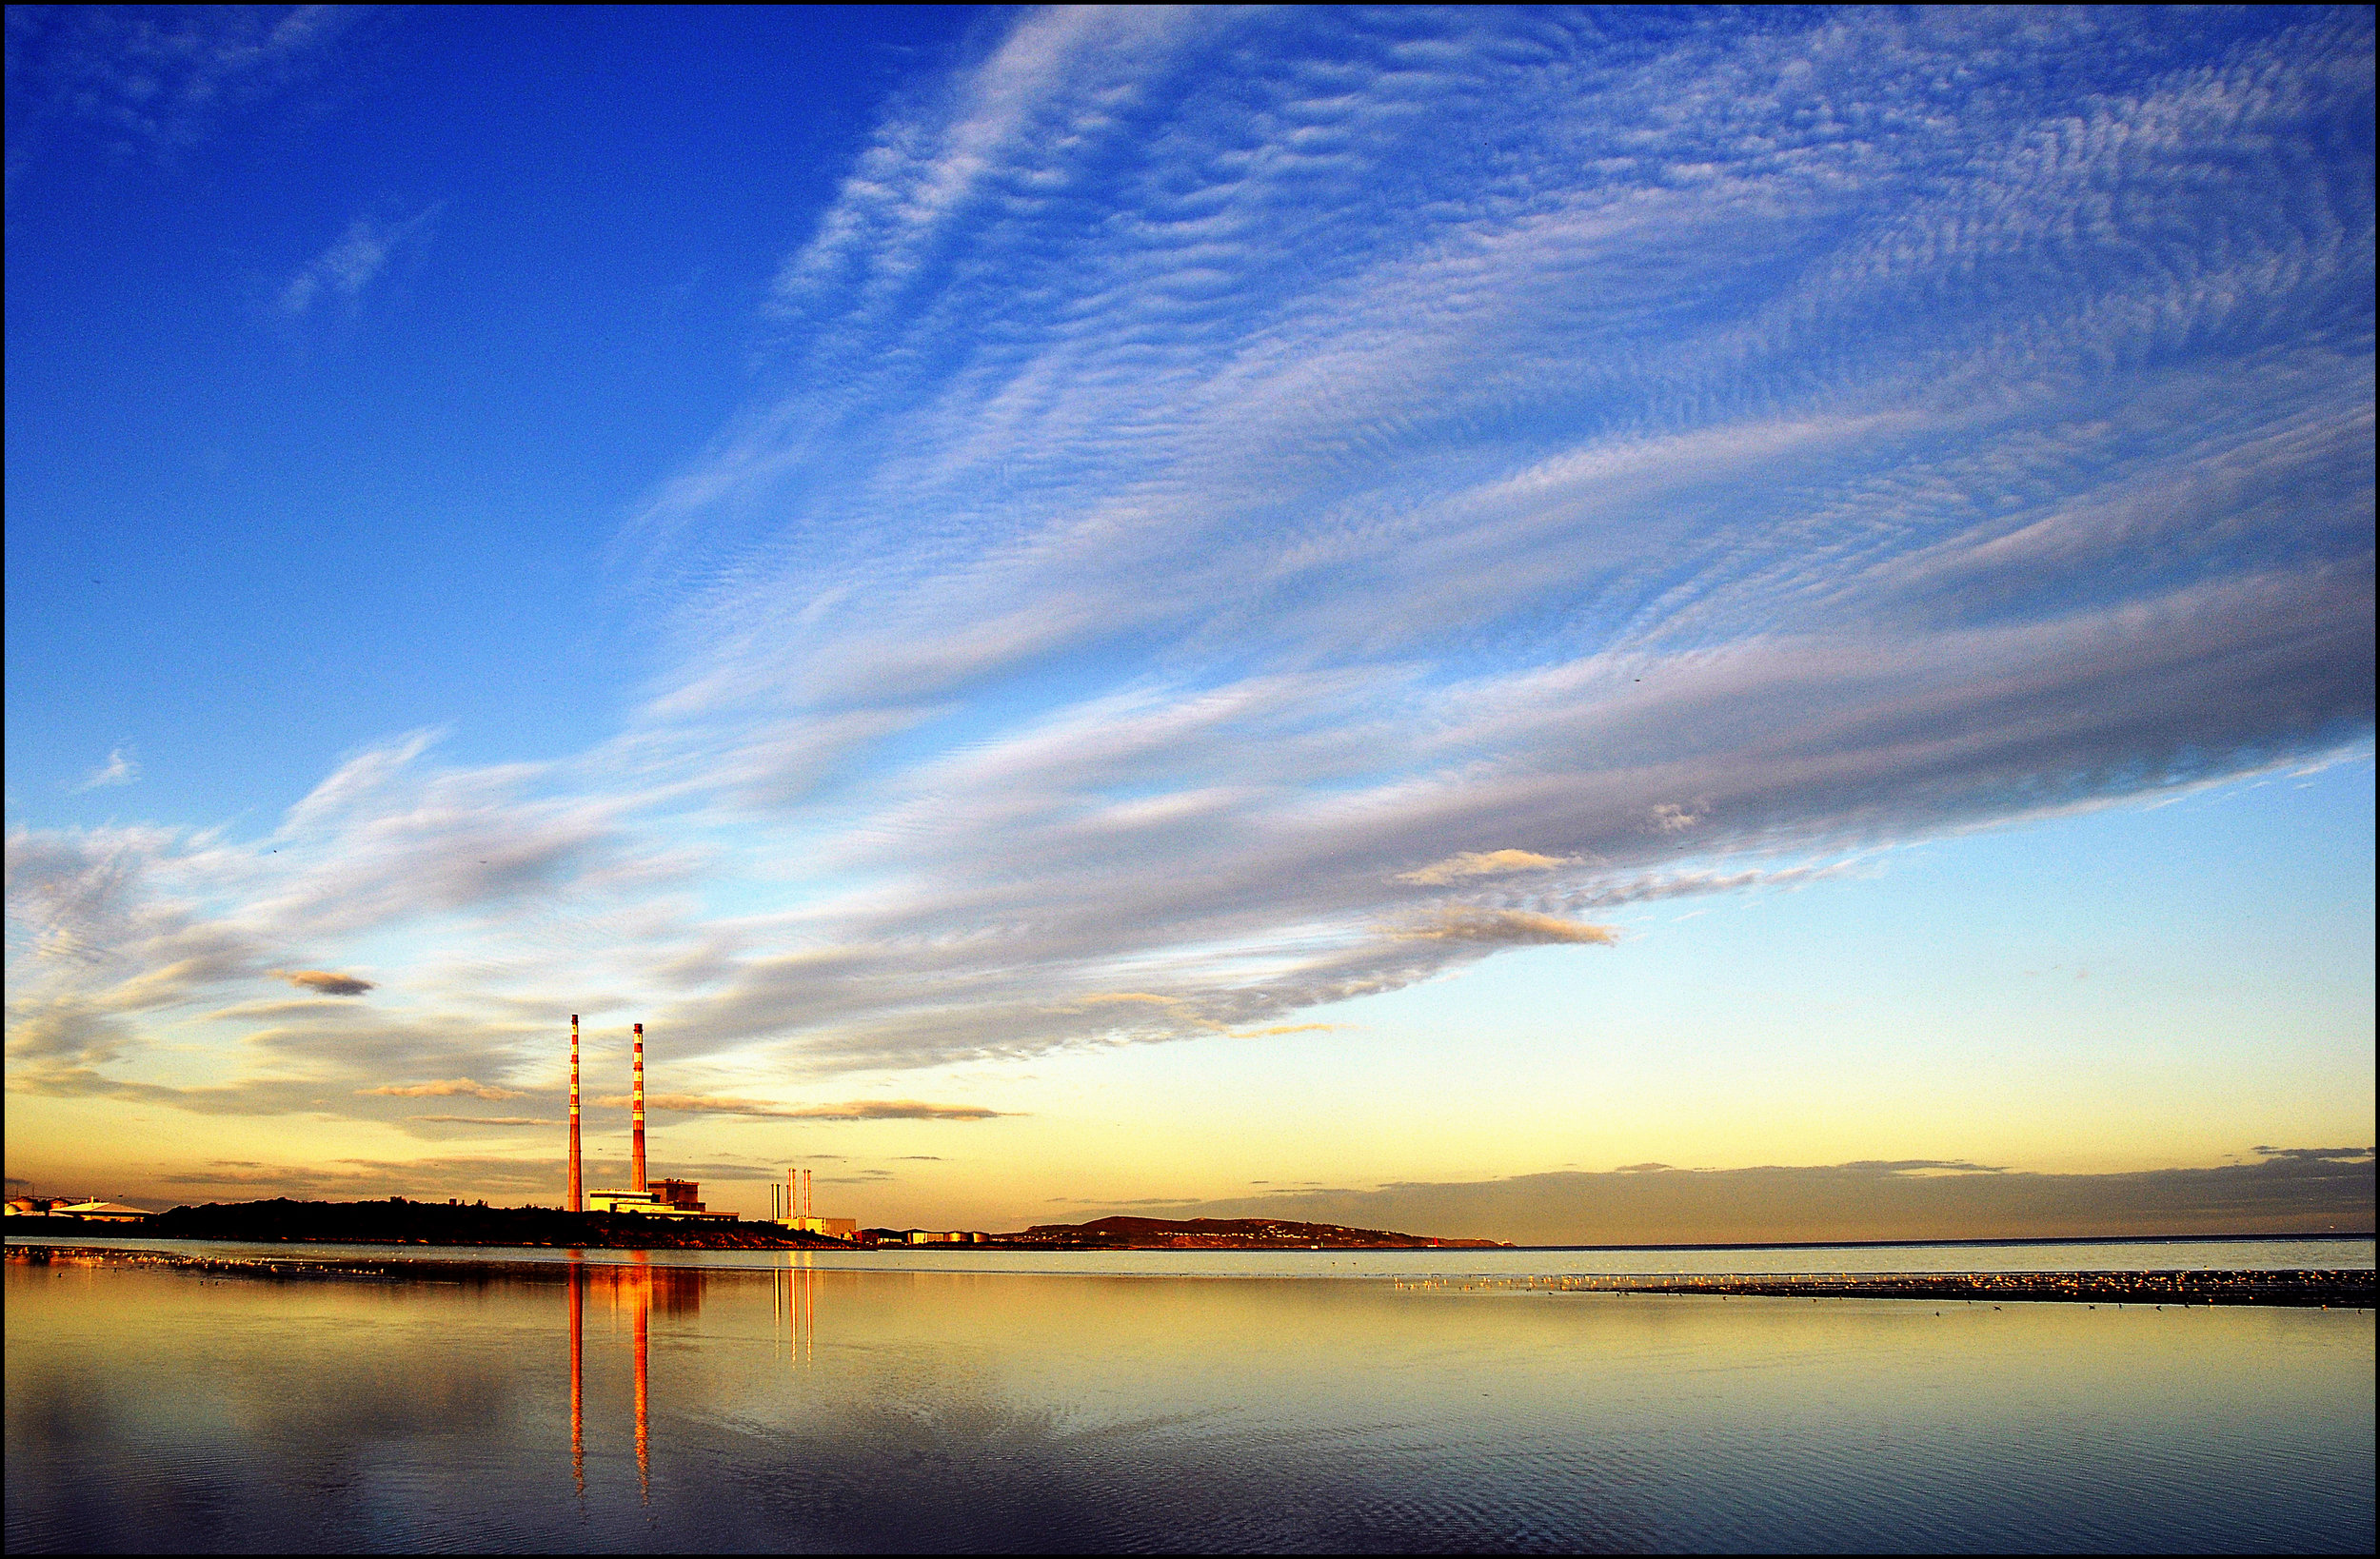 SANDYMOUNT BEACH OCT 12 A_2-2.jpg